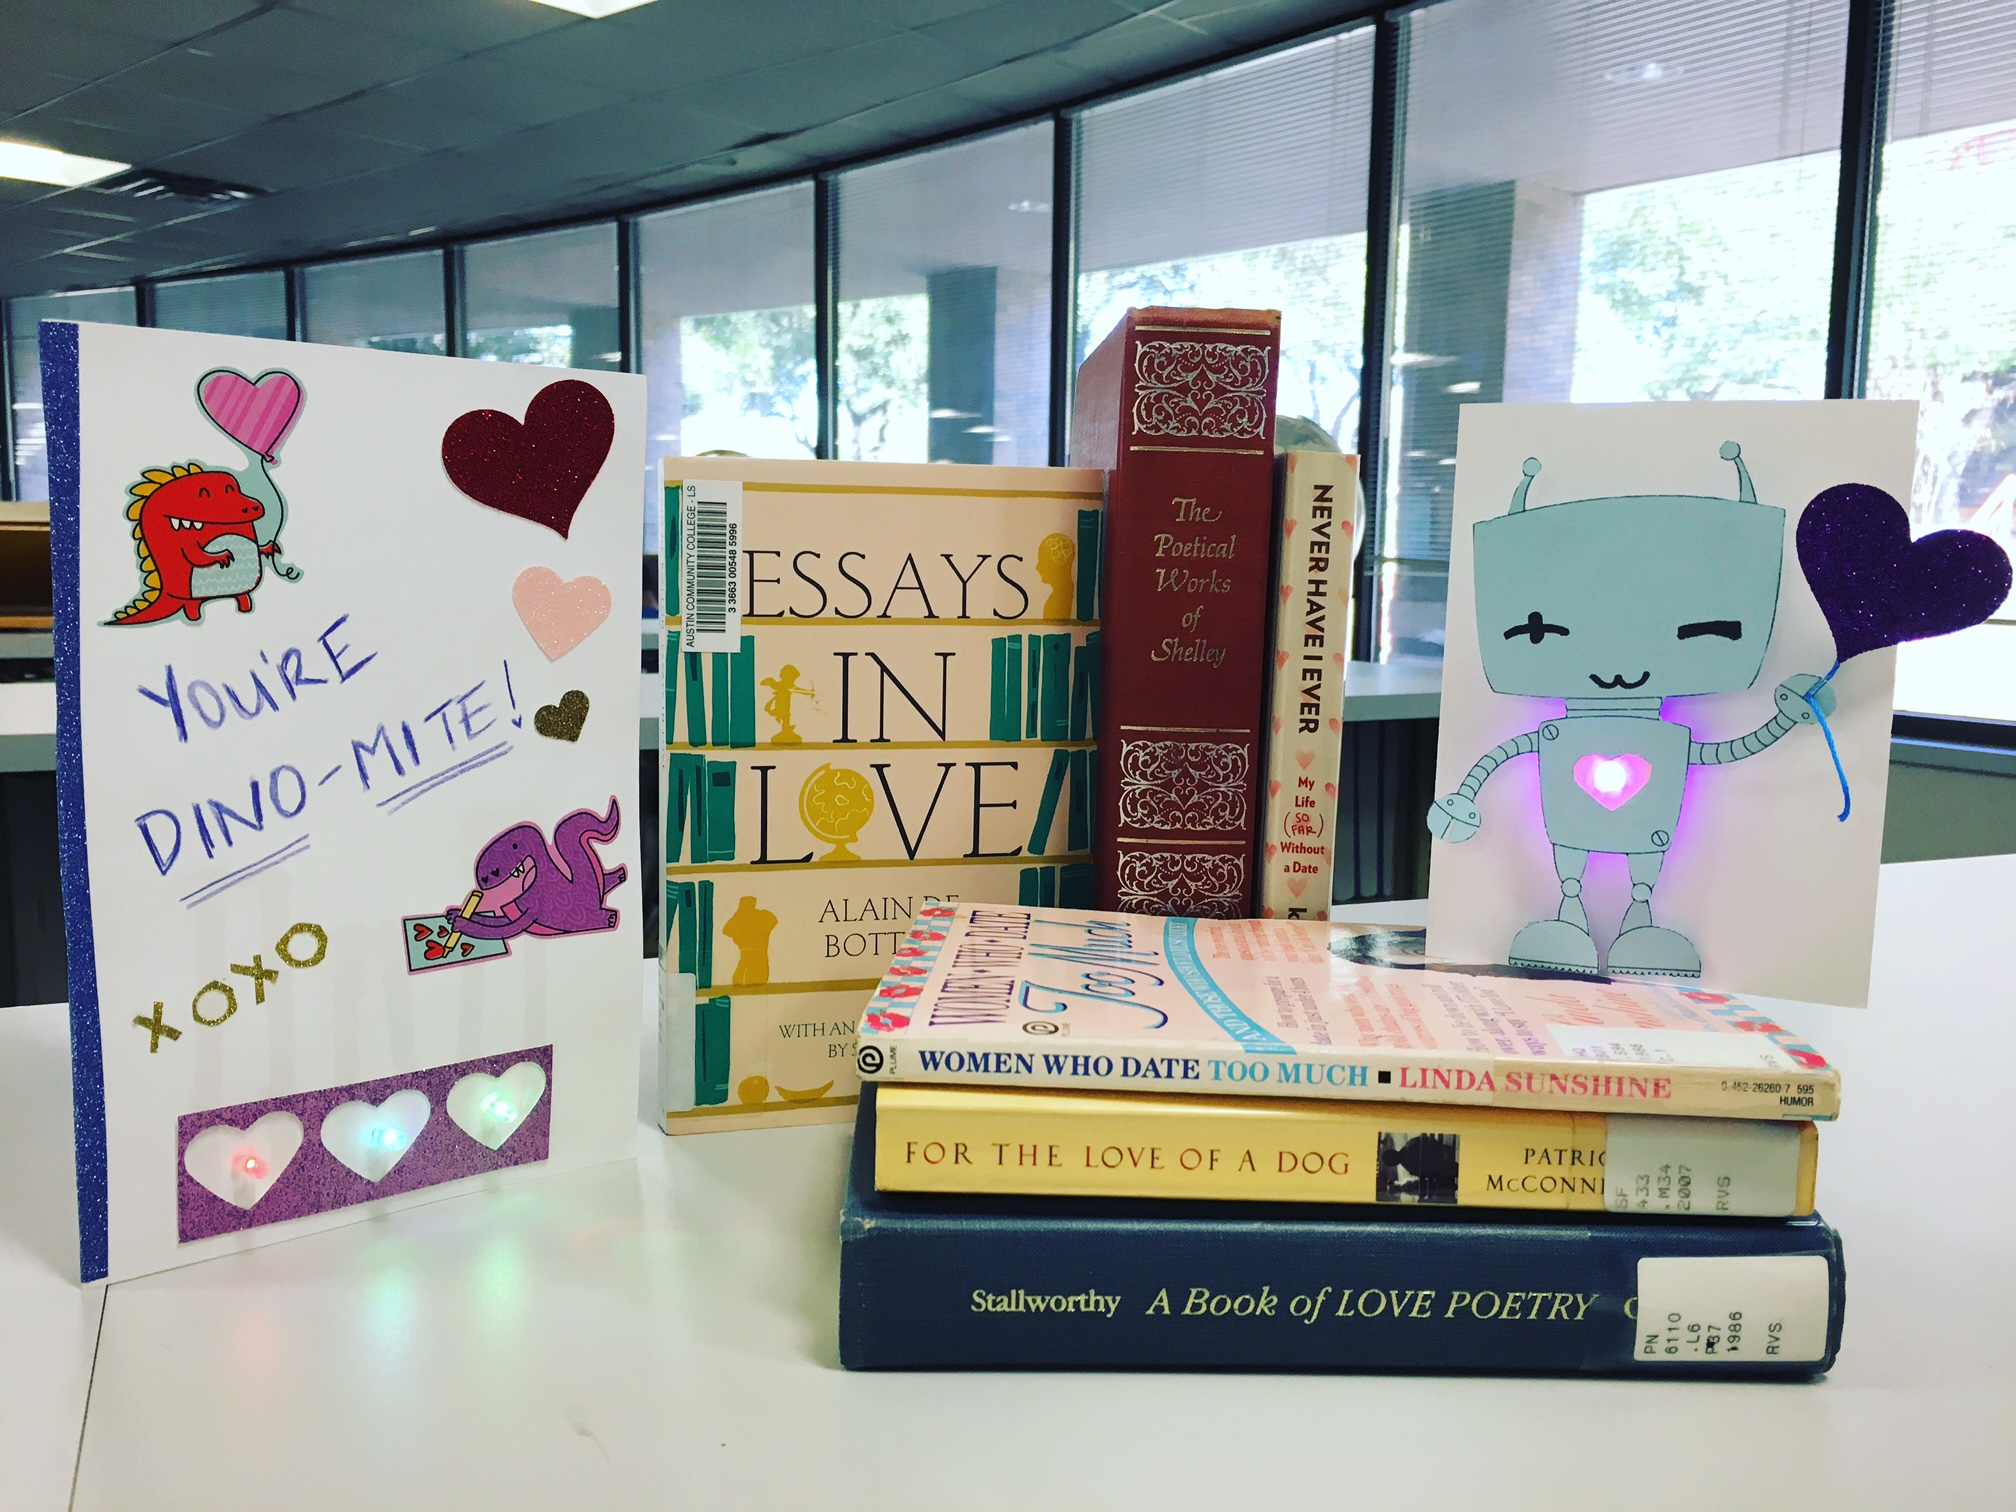 Image of a stacks of books with two paper circuit valentines day cards